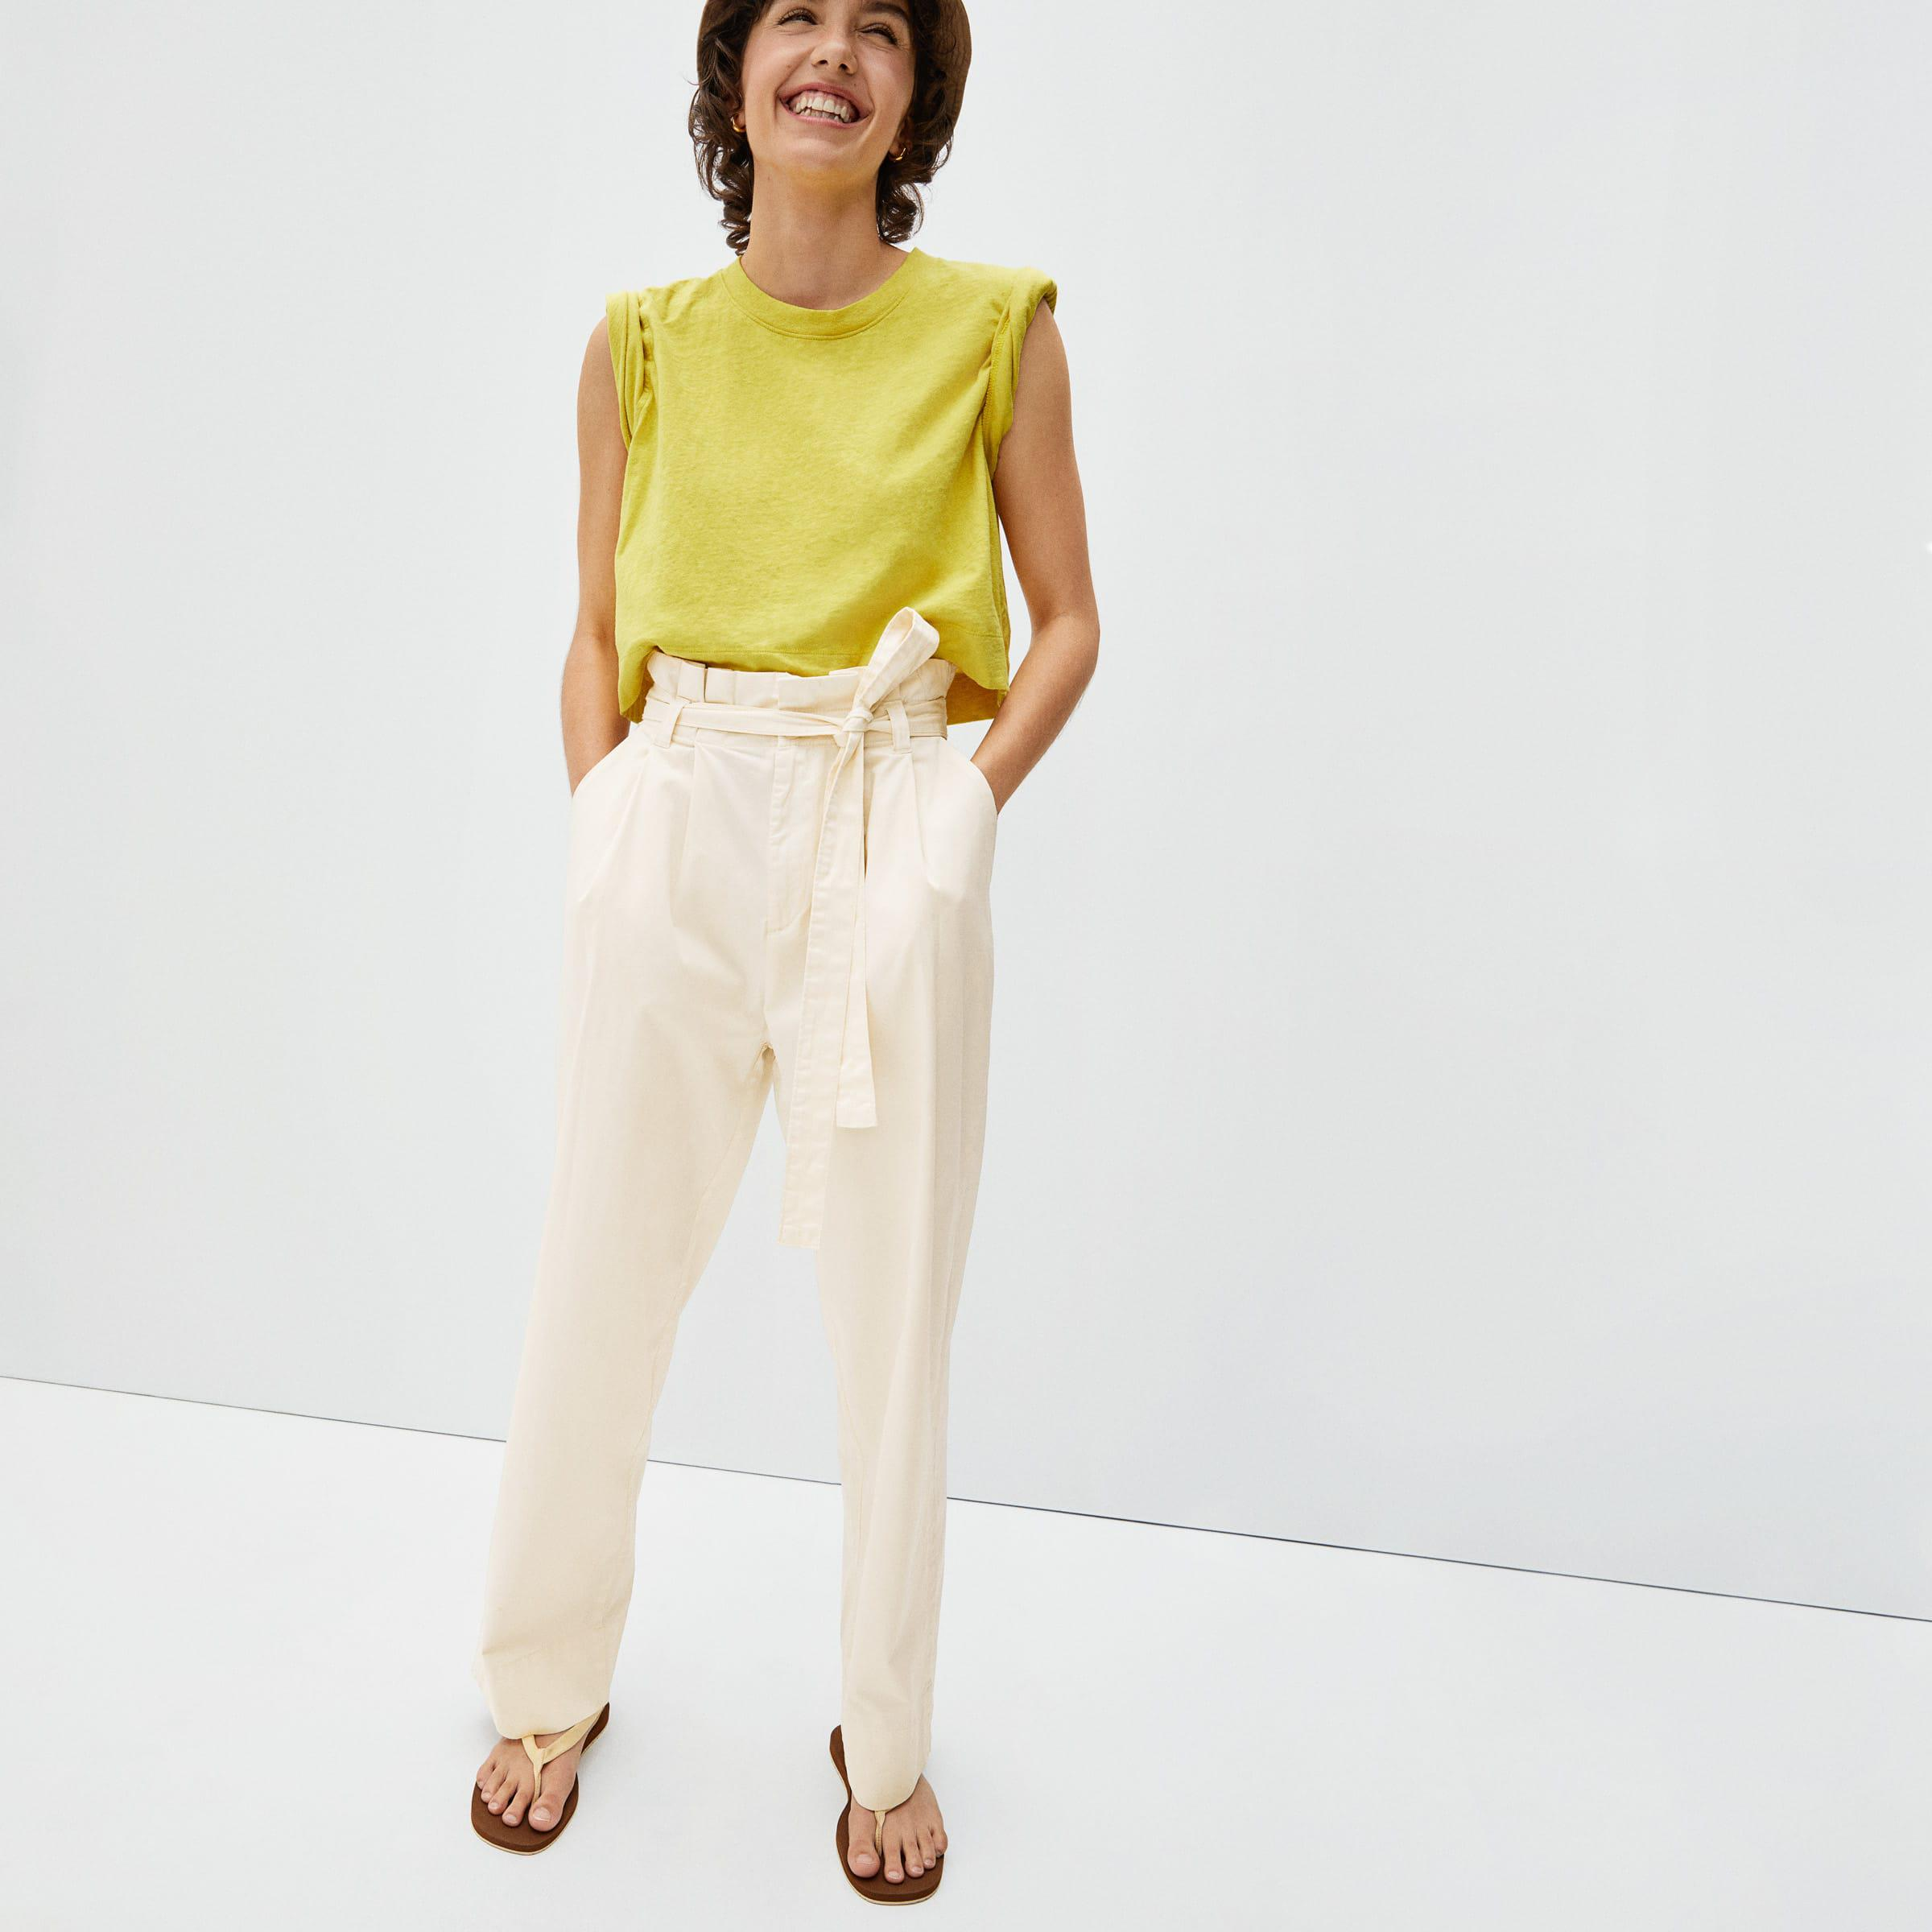 The Paperbag Pant